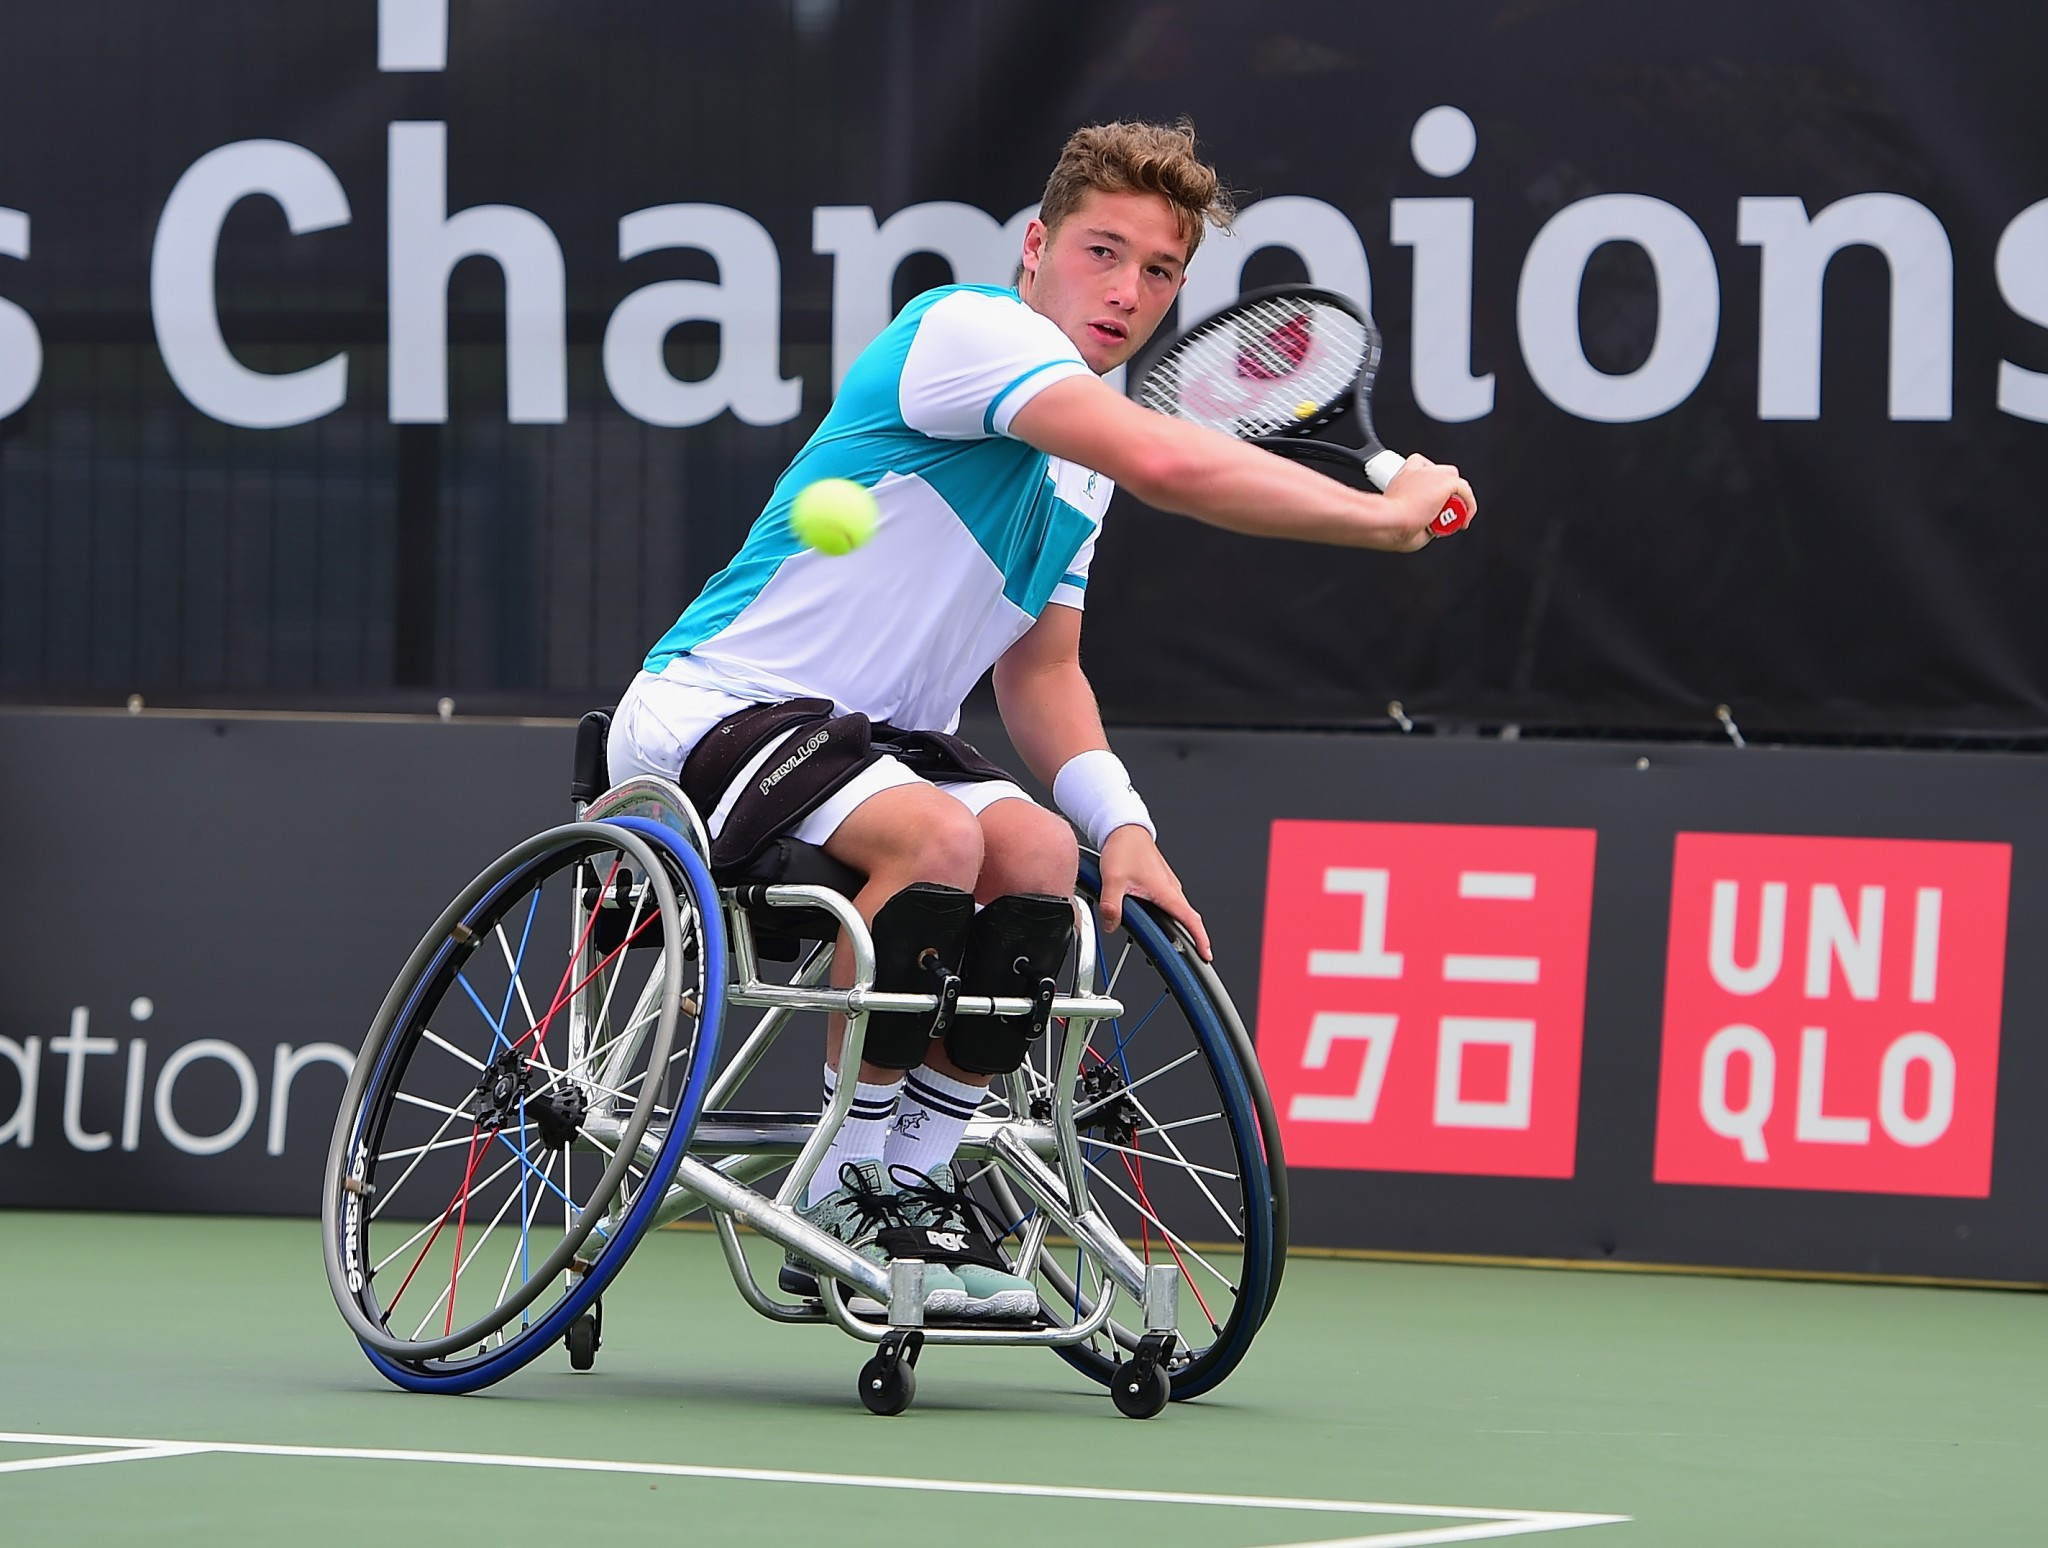 Hewett defeats Reid in British Open Wheelchair Tennis Championships semi-final